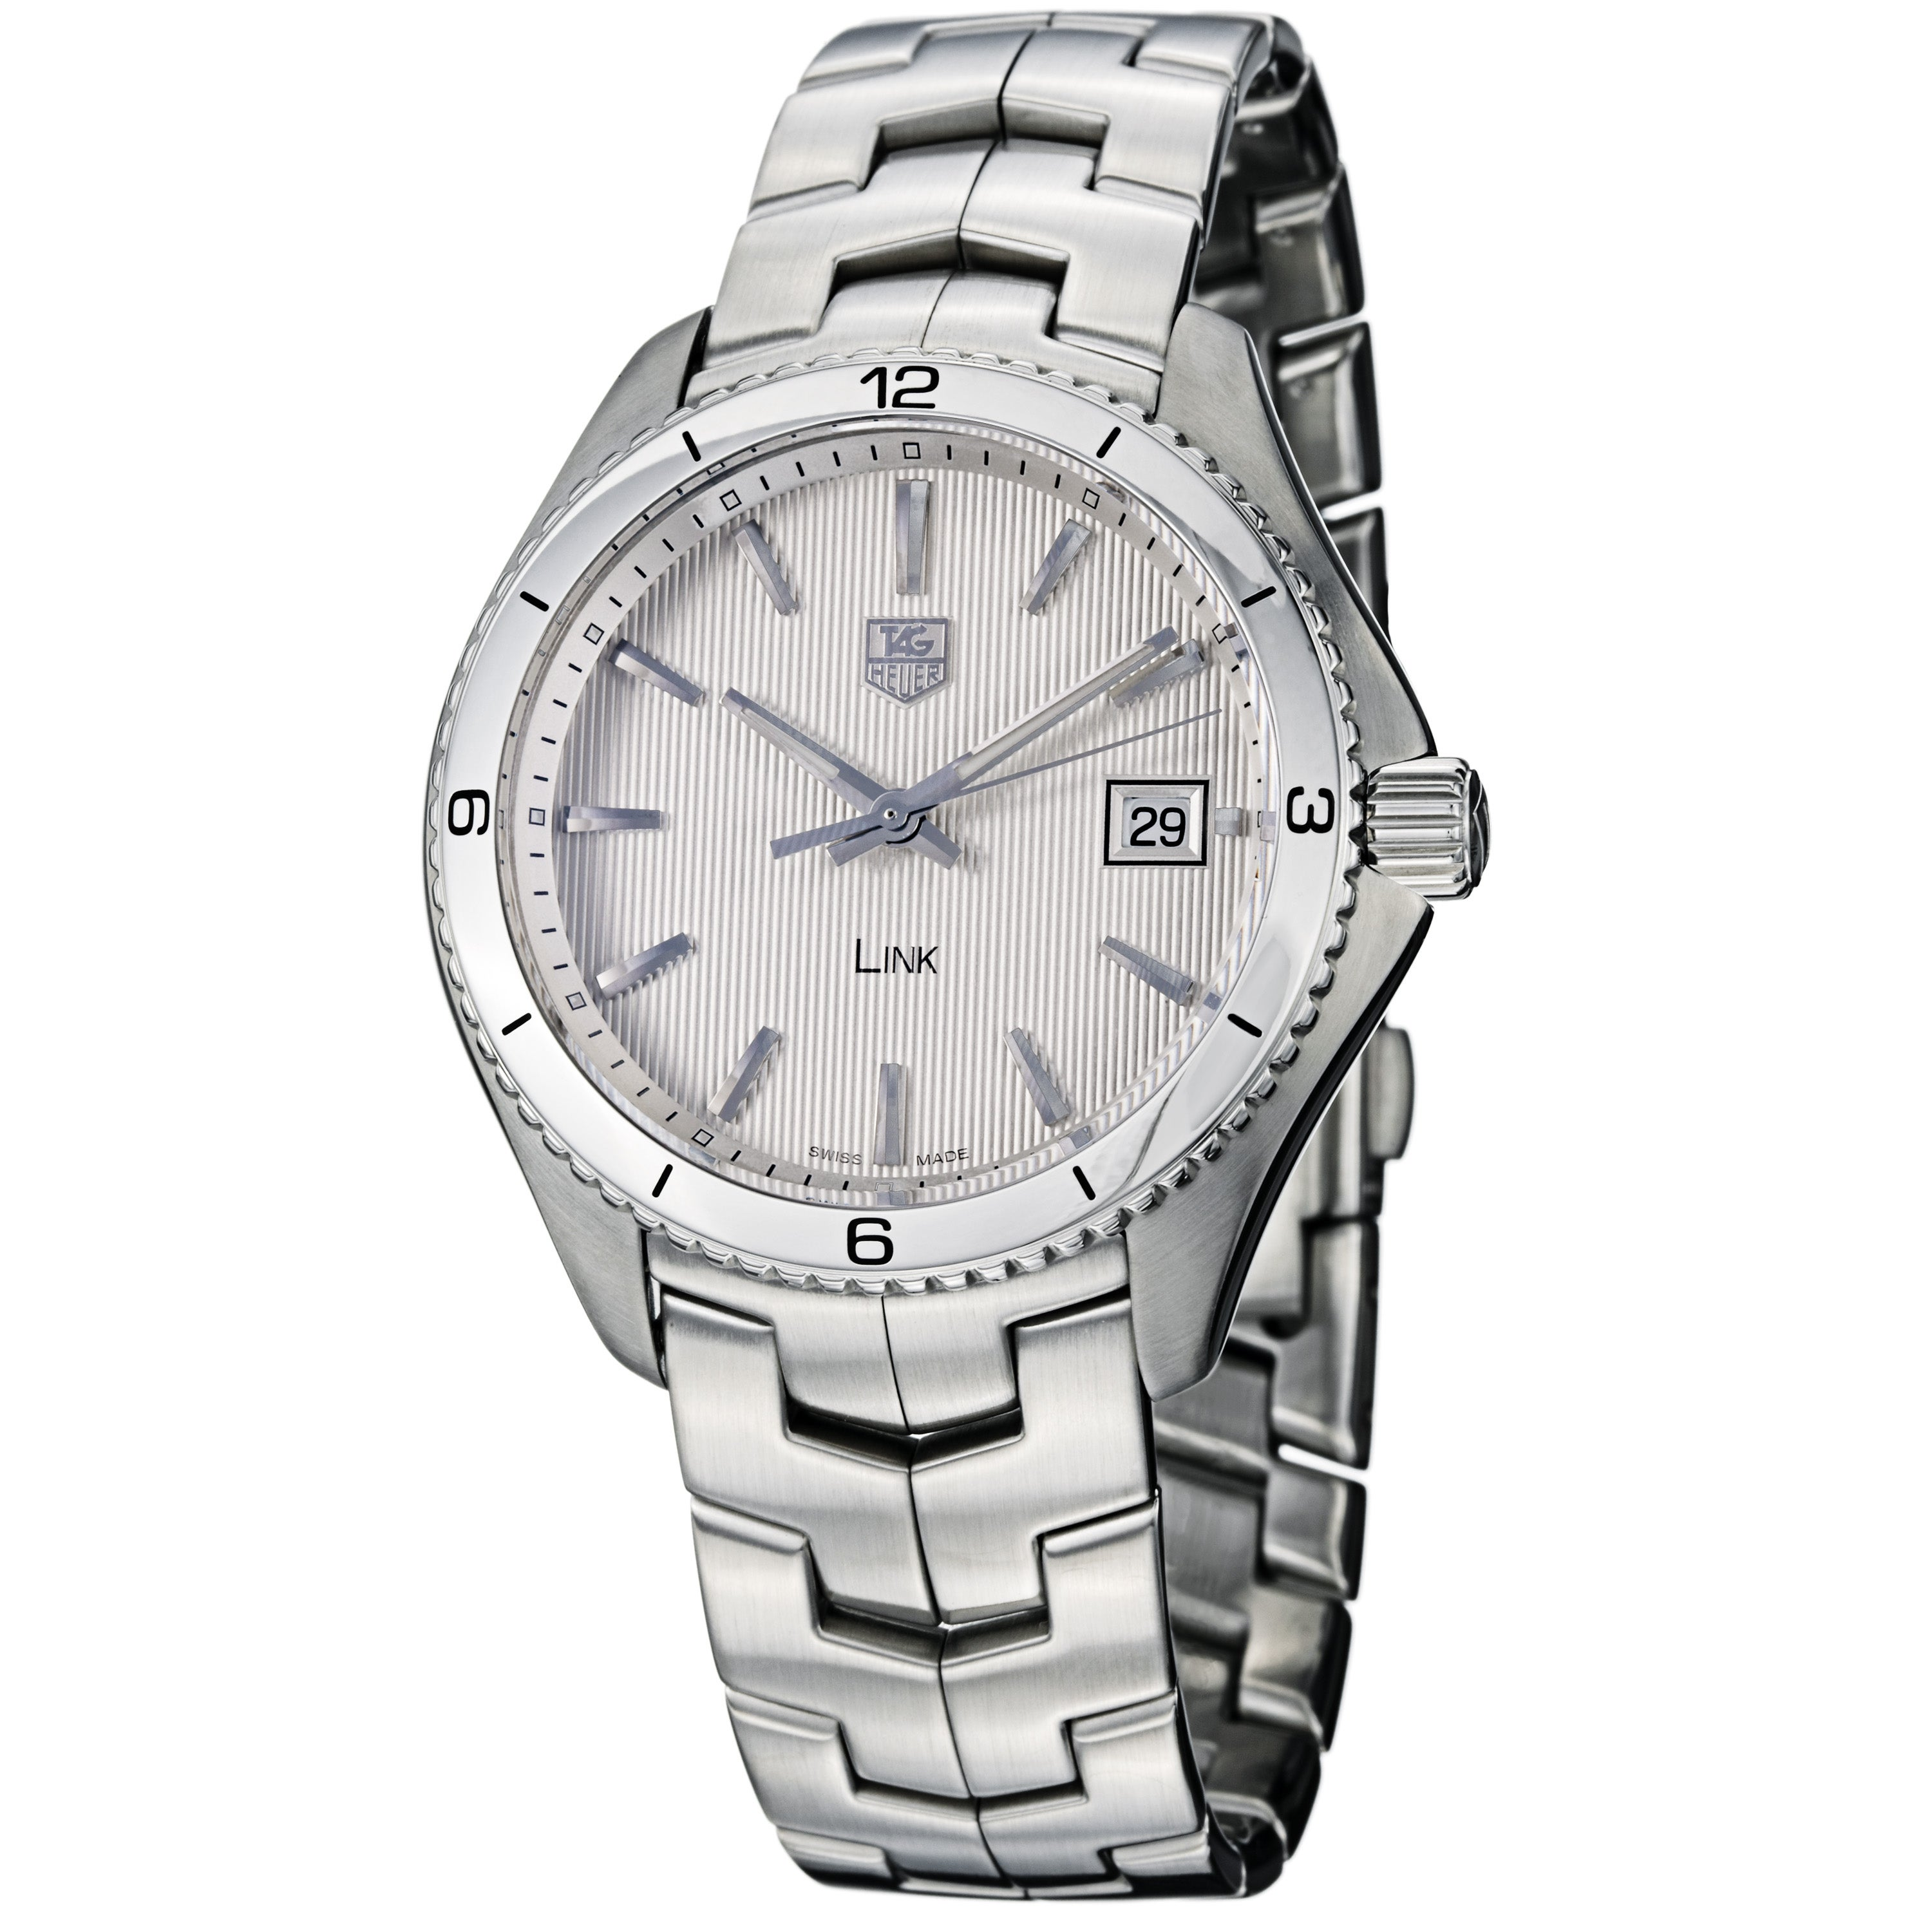 Tag Heuer Men's WAT1111.BA0950 'Link' Silver Dial Stainless Steel Quartz Watch